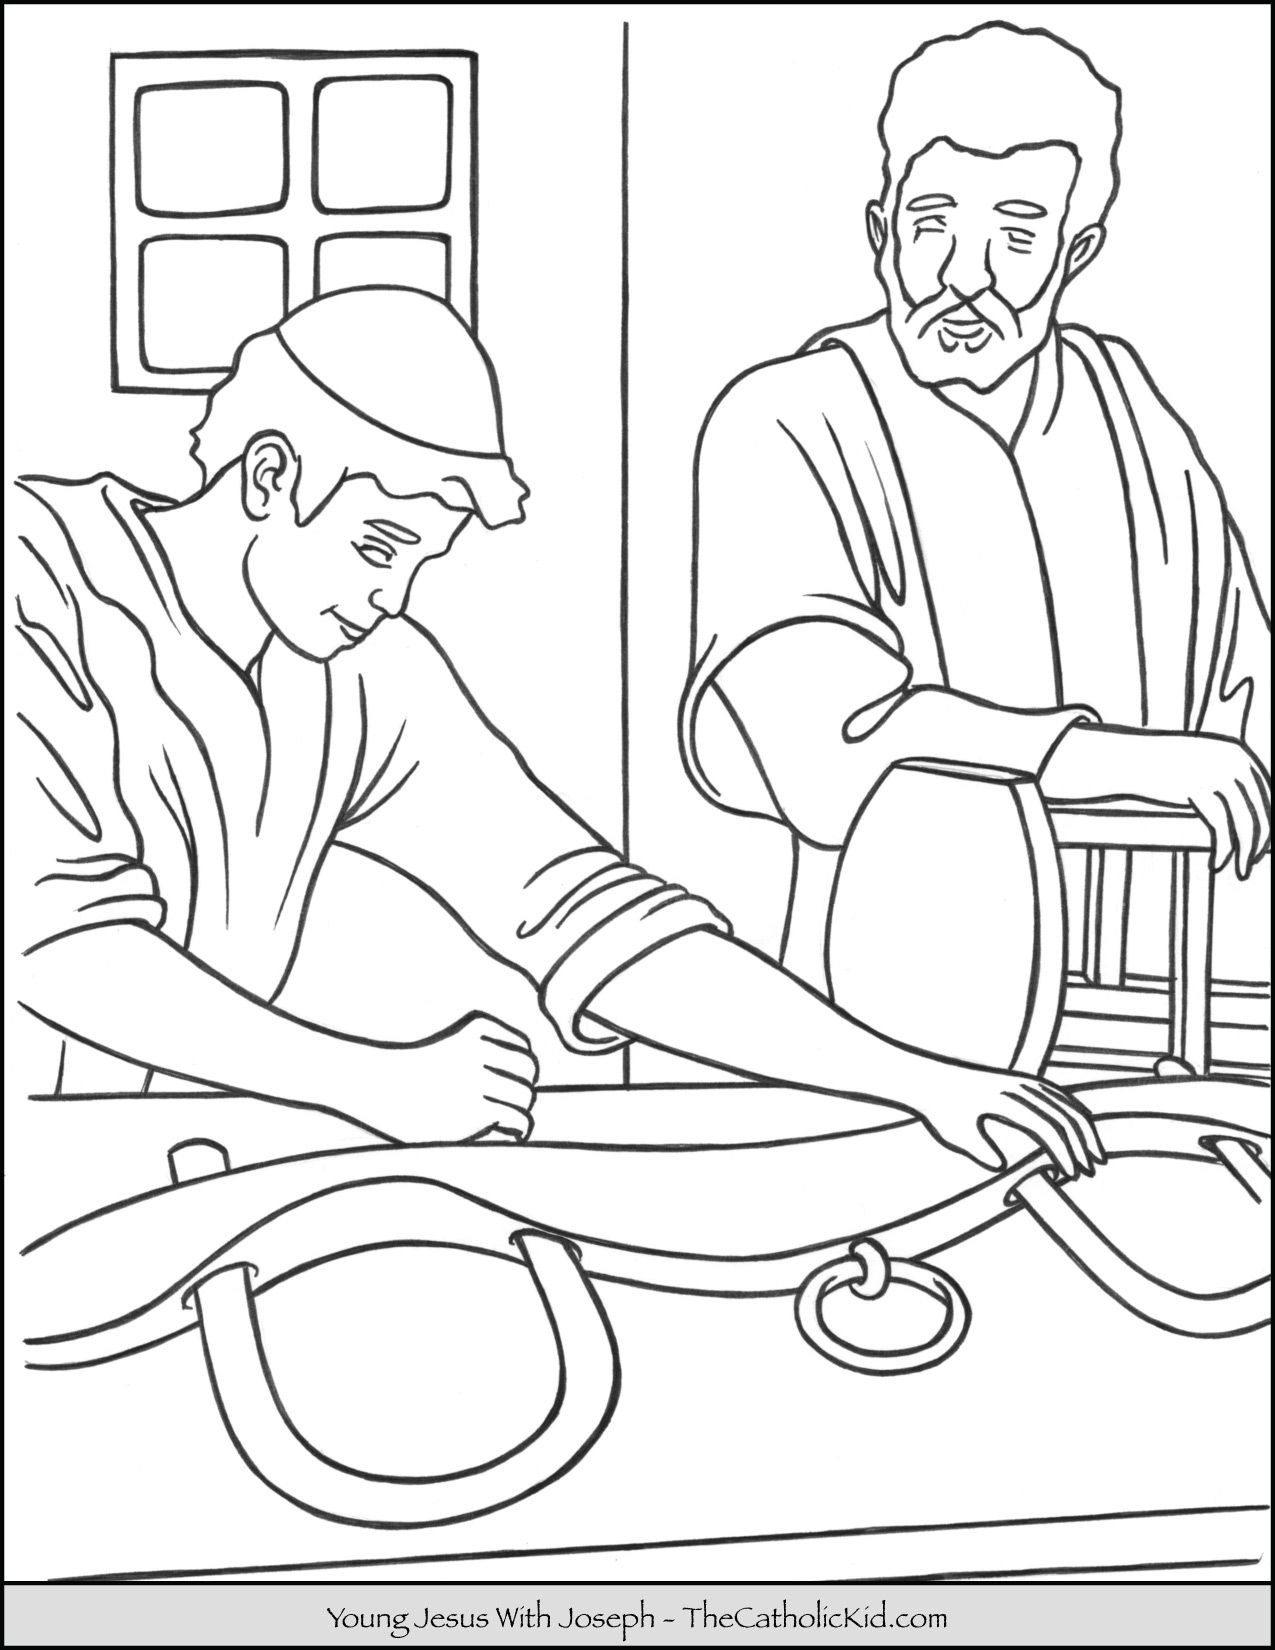 Young Jesus With Joseph Coloring Page Thecatholickid Com Jesus Coloring Pages Coloring Pages Bible Coloring Pages